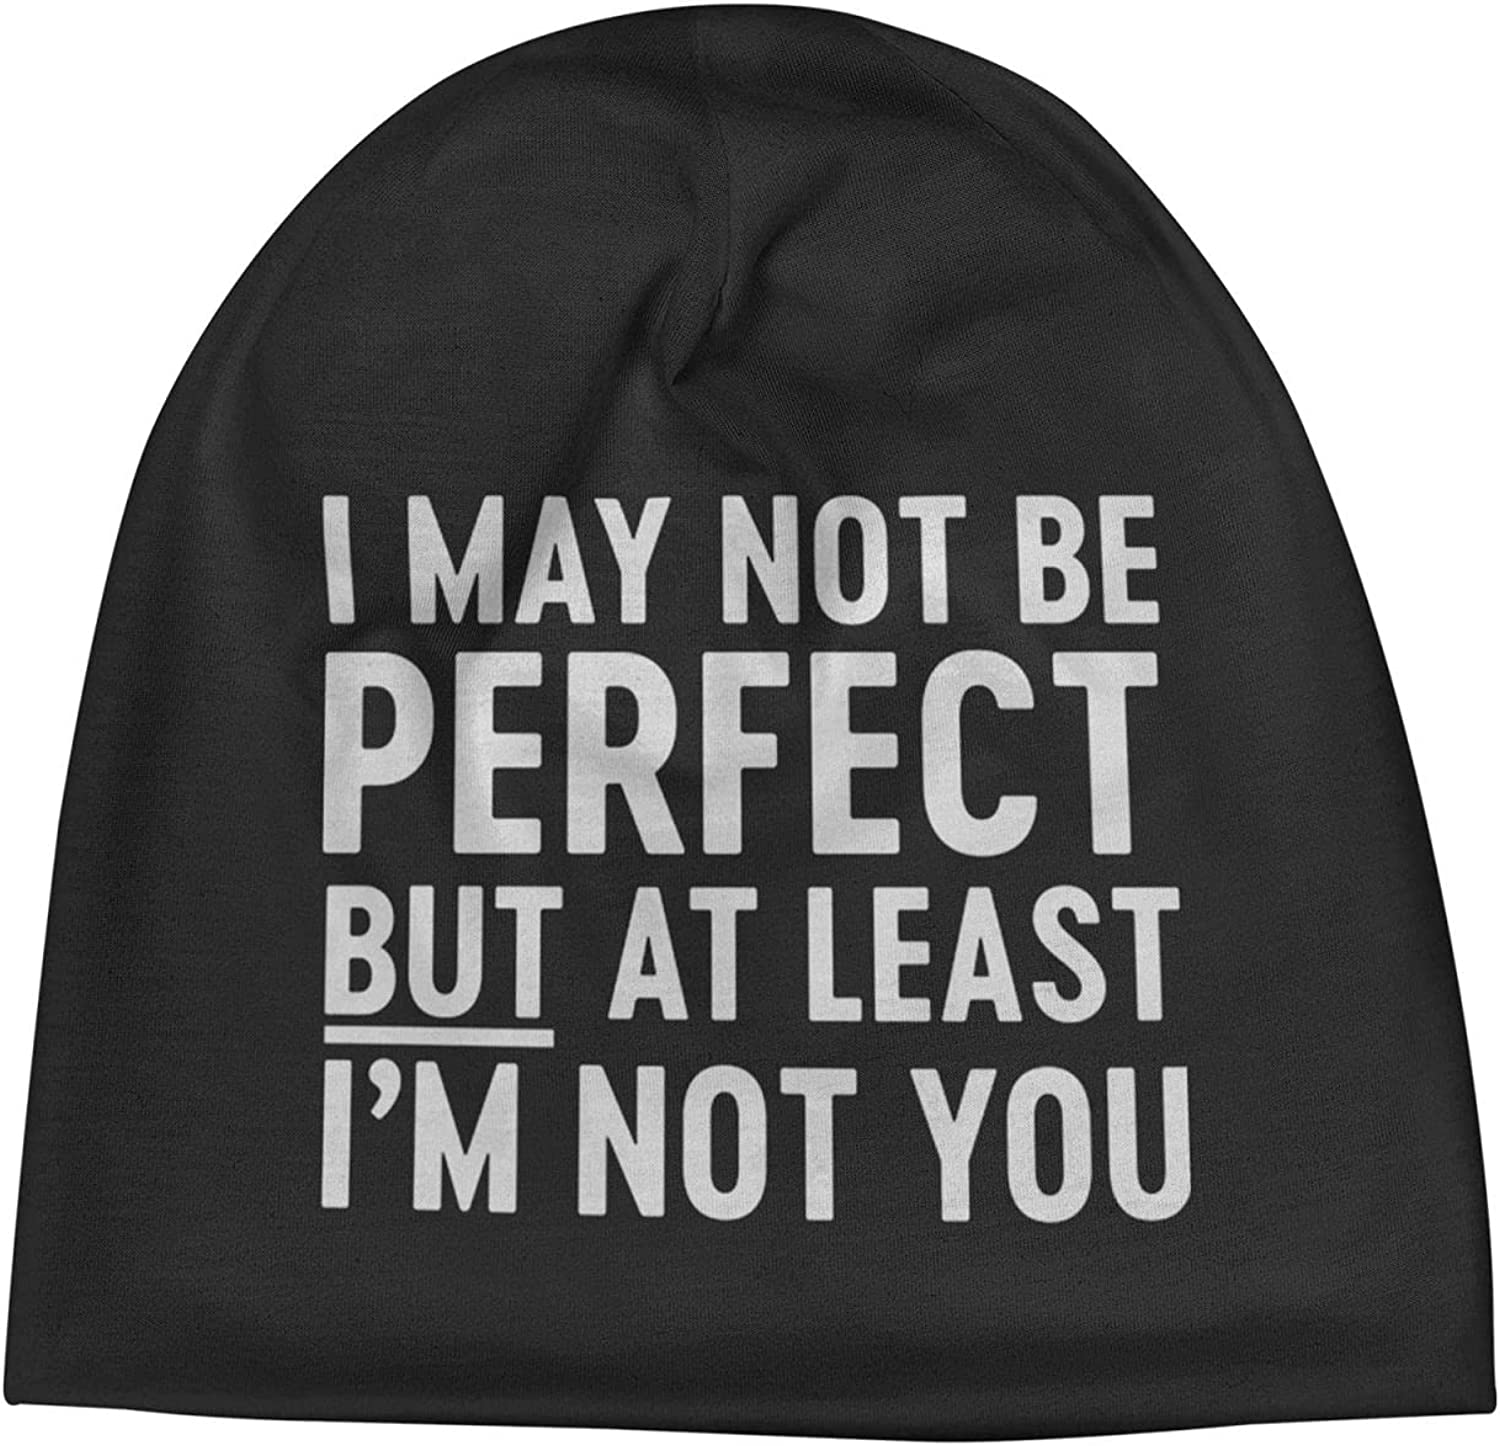 I May Not Be Perfect But at Least Genuine Free Shipping You1 Slogan Bea Manufacturer regenerated product Unisex I'm